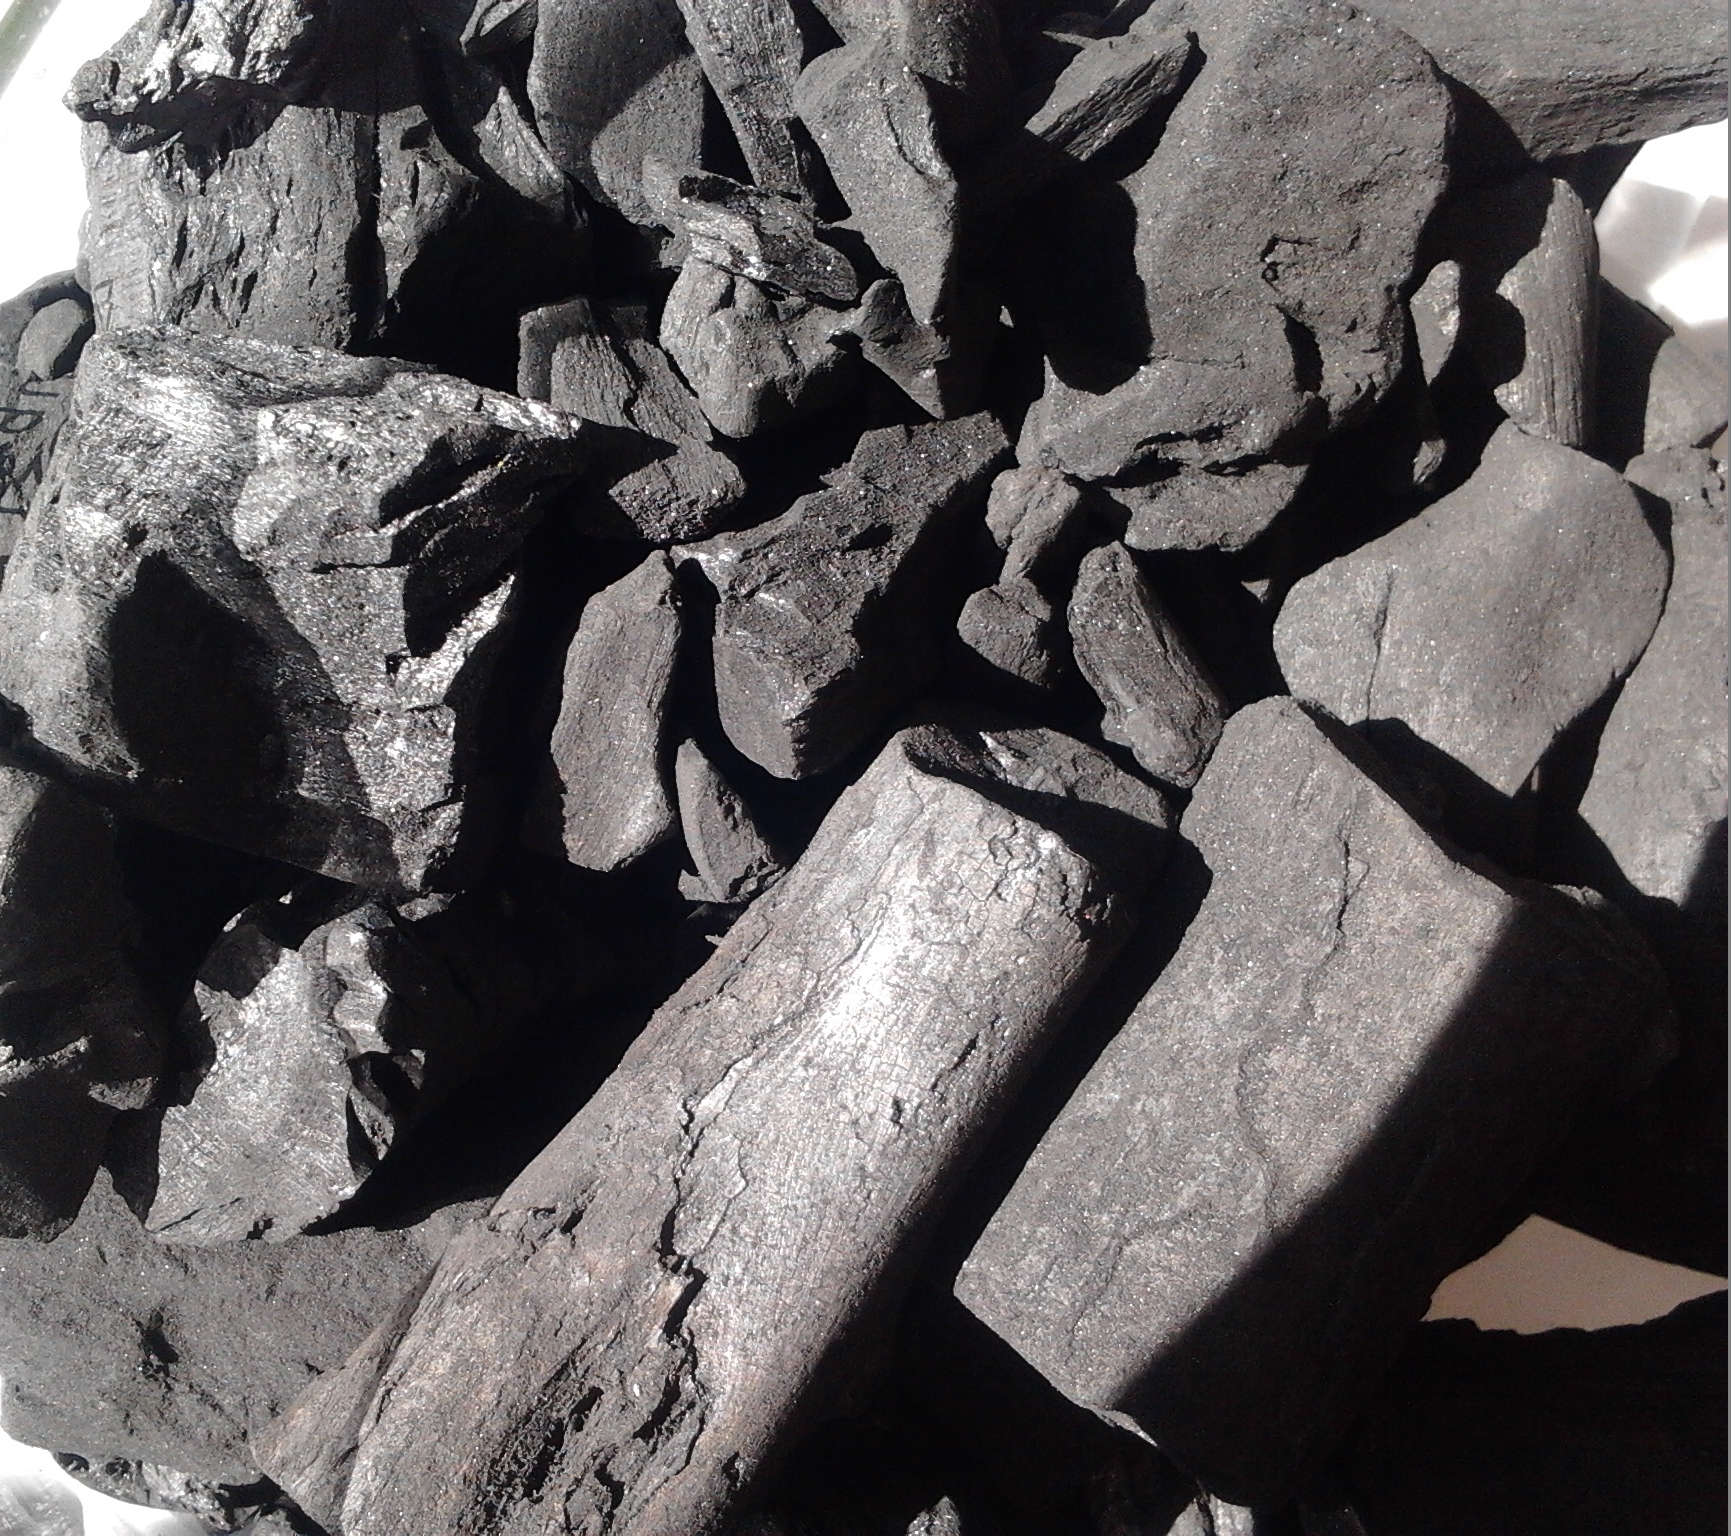 Barbecue charcoal, barbecue charcoal briquettes and woodcoal